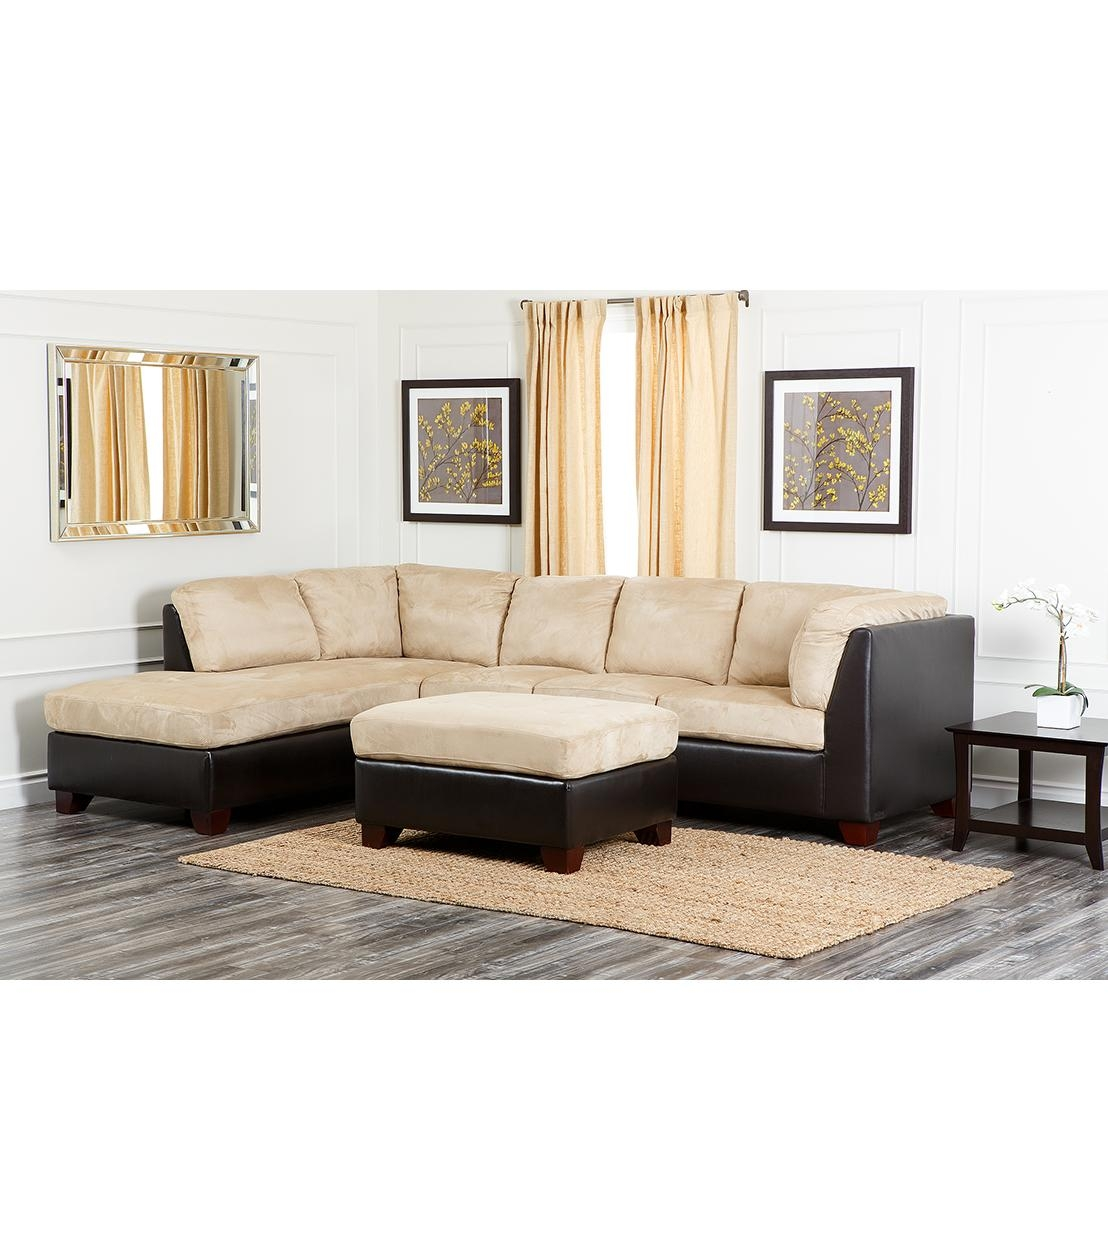 Sectionals Regarding Abbyson Living Sectional Sofas (Image 16 of 20)